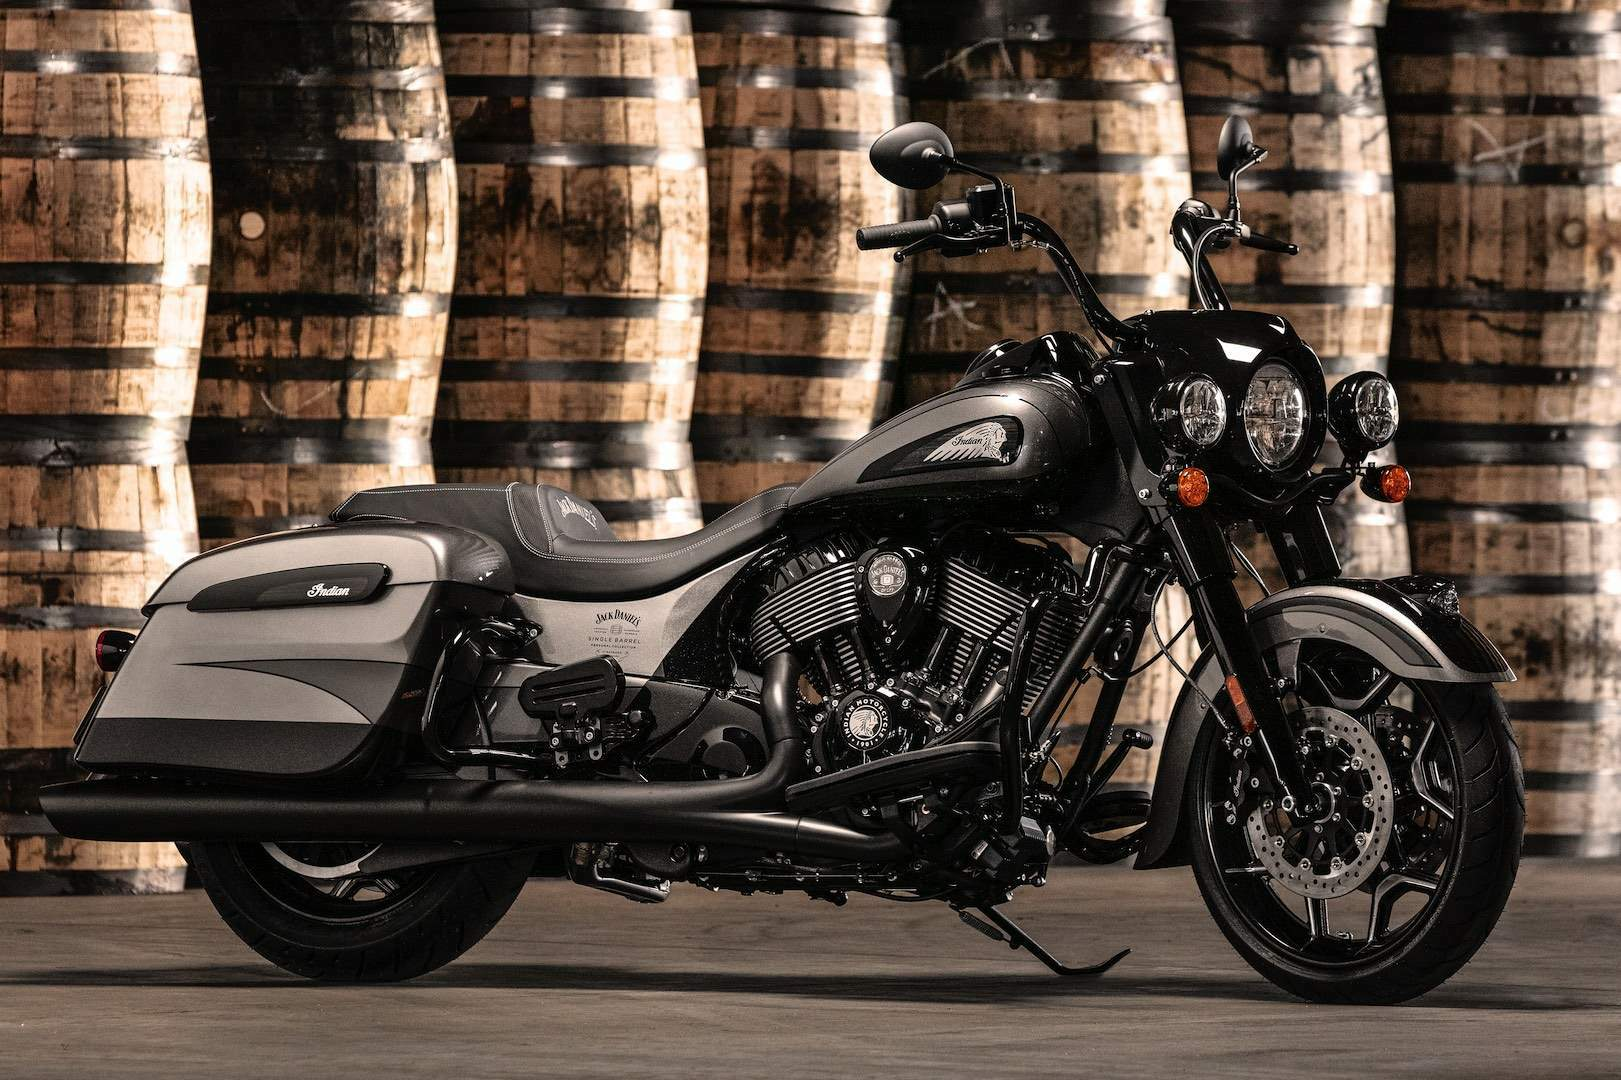 Indian Springfield Dark Horse Jack Daniel Limited Edition technical specifications